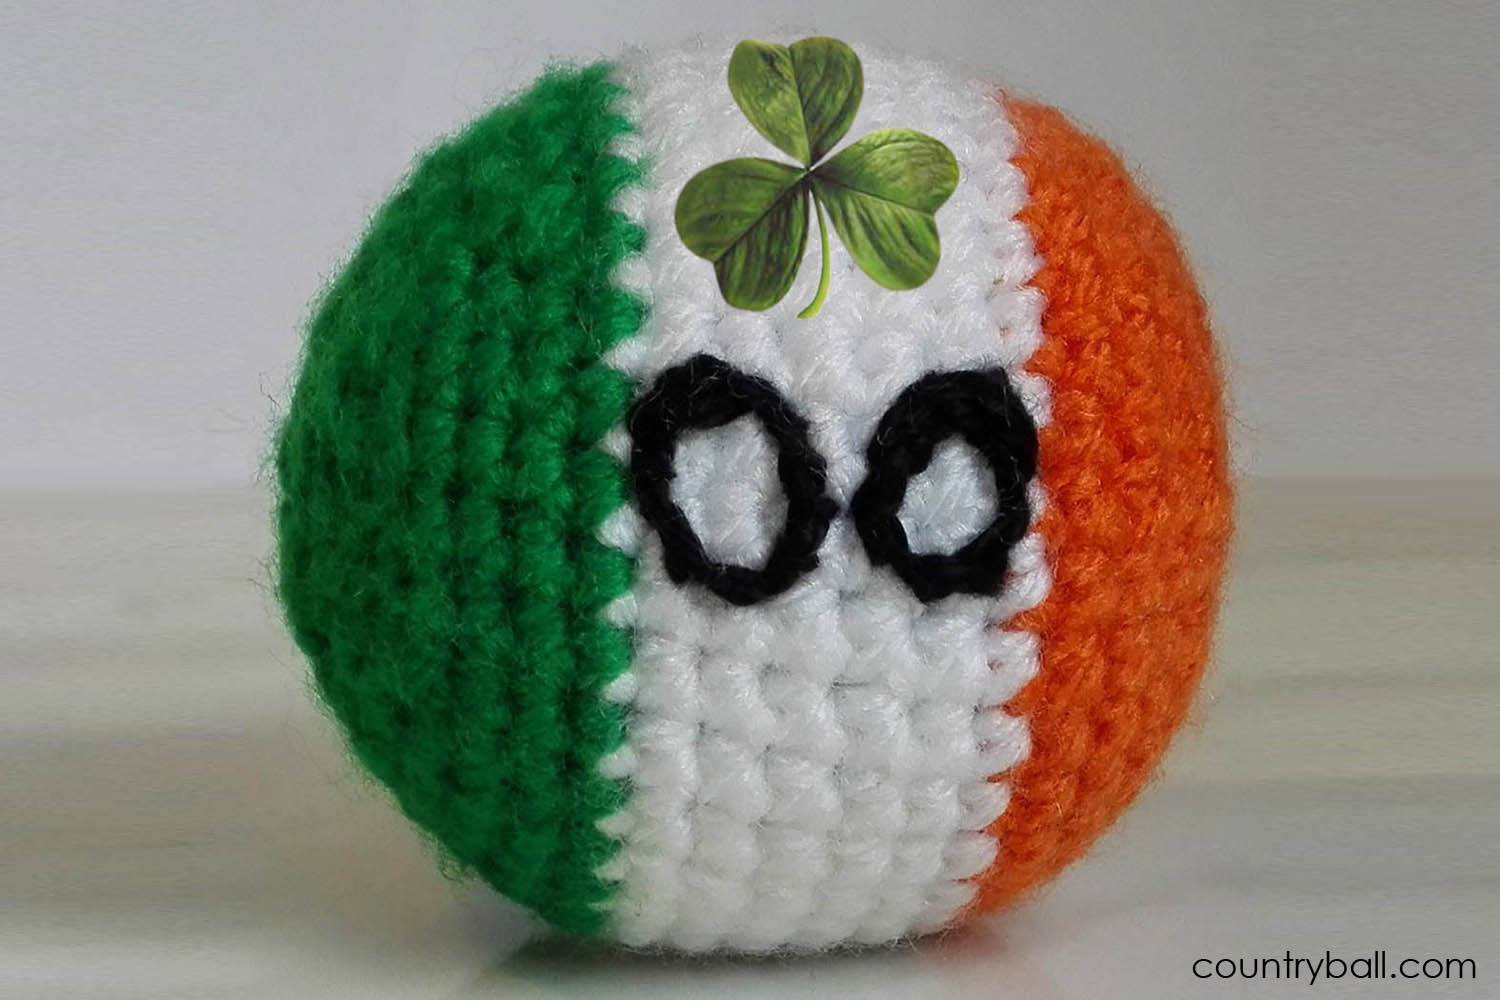 Irelandball with Shamrock